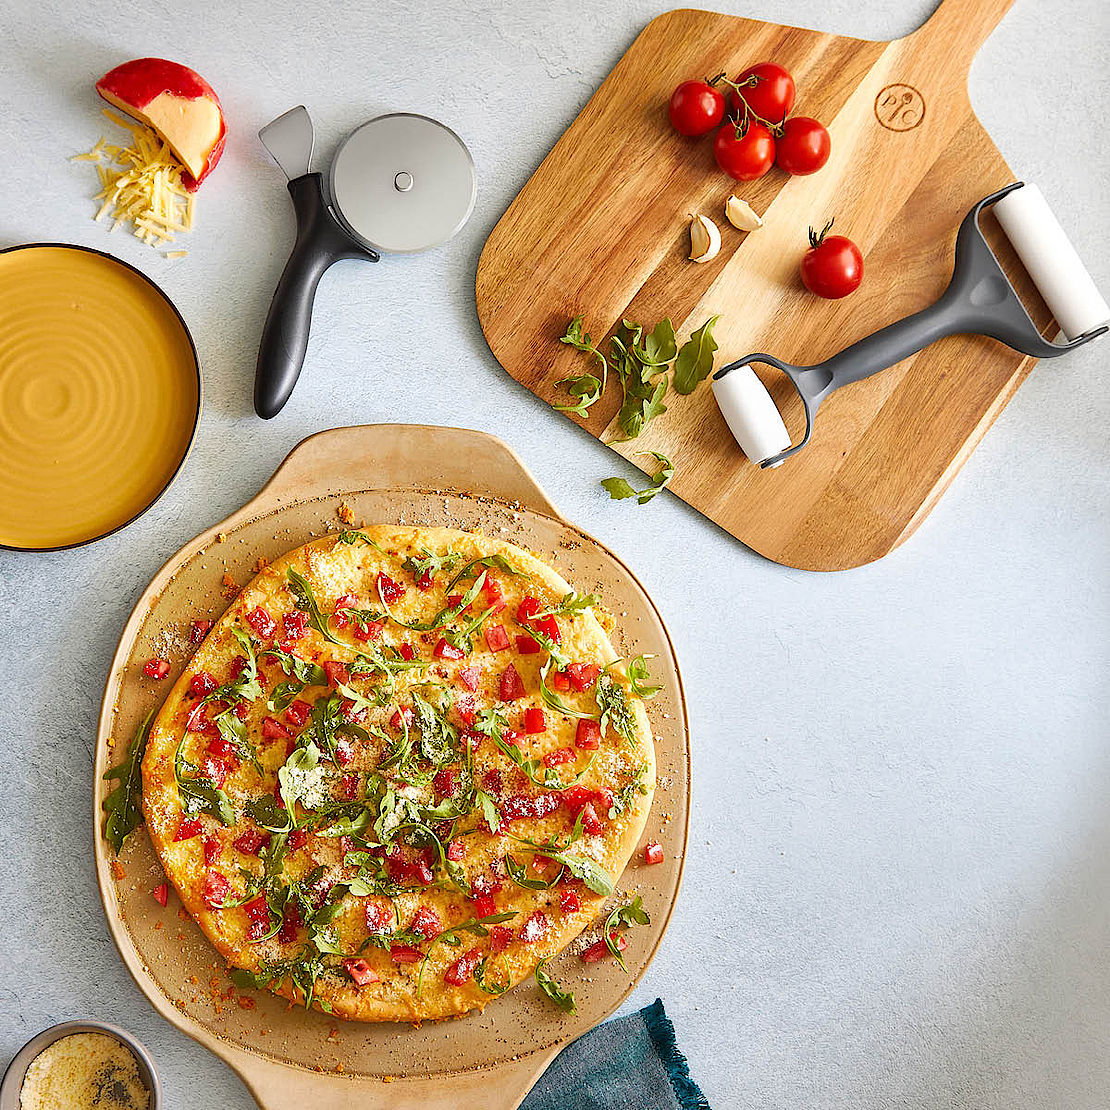 Coverbild von Pampered Chef® vom Pizza Set